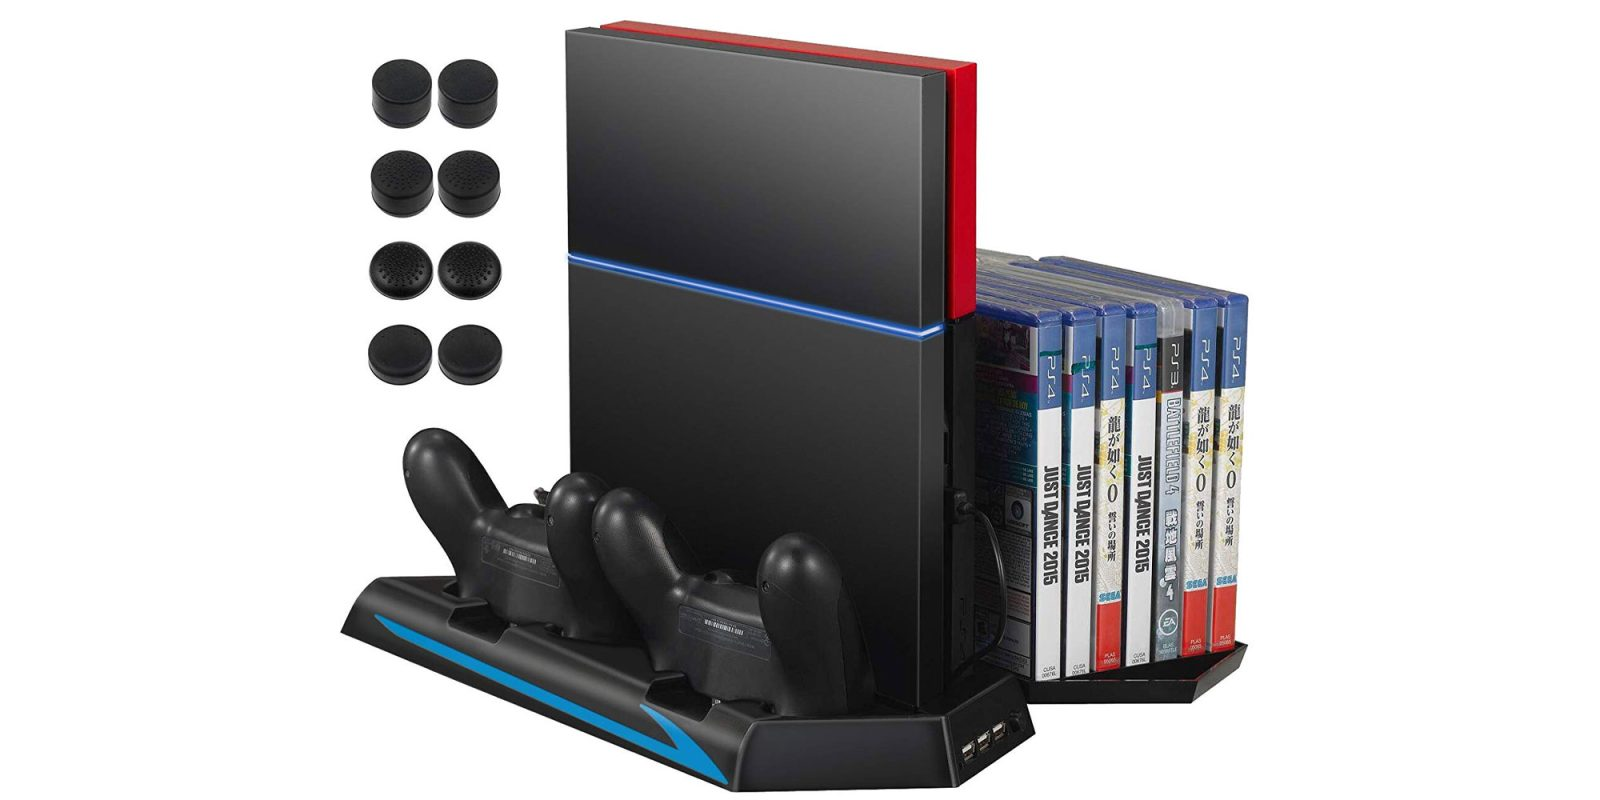 This PlayStation 4 cooling stand also charges your remotes and more for $10.50